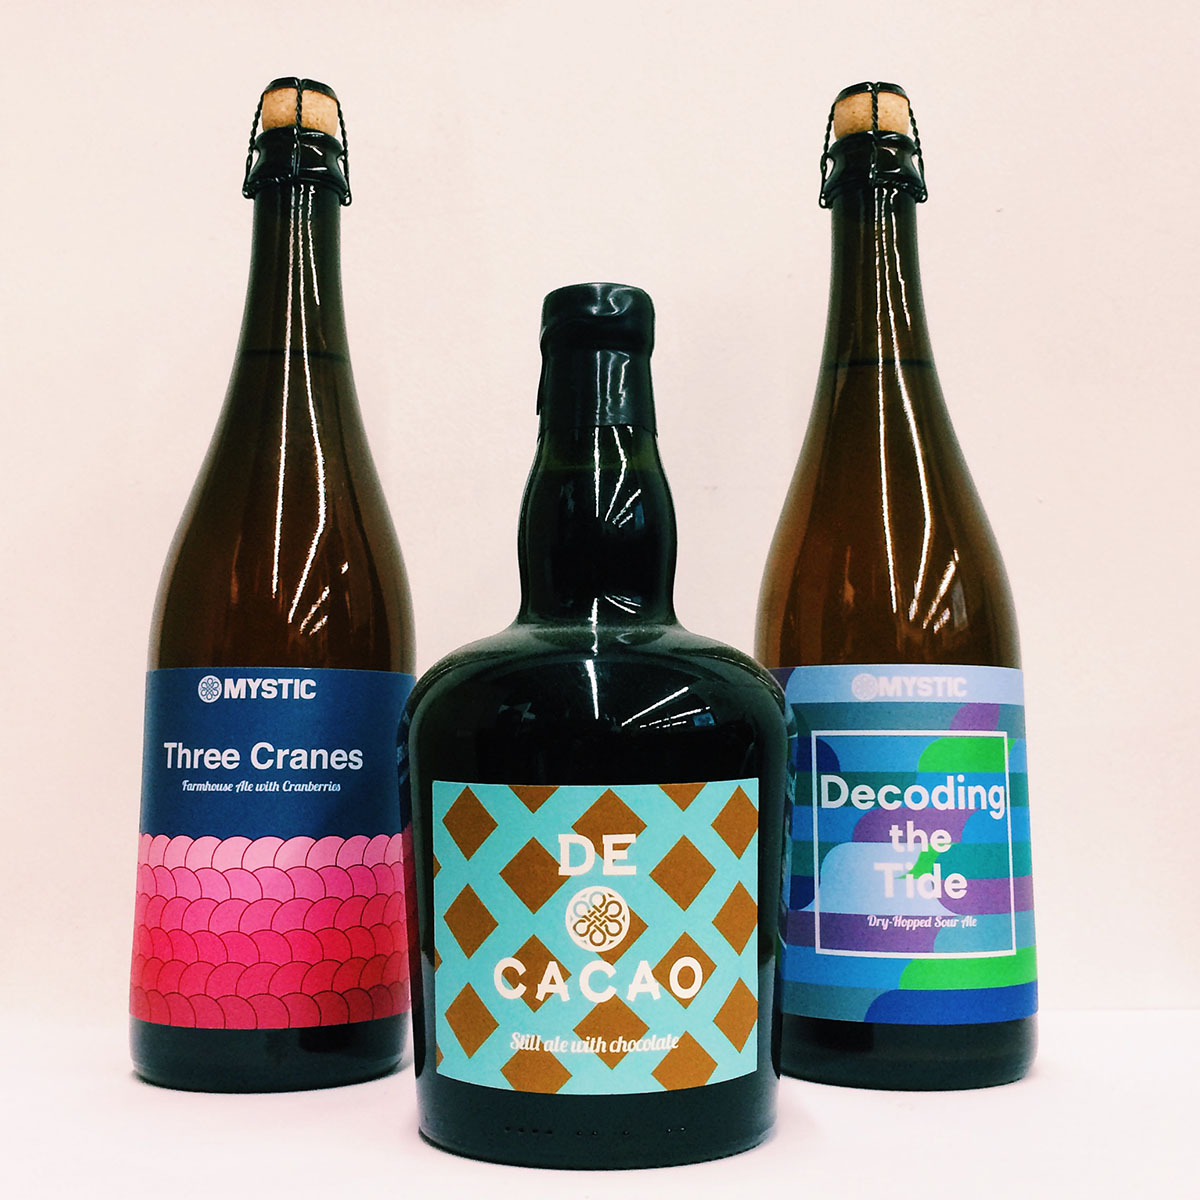 Bottles from Mystic Brewing